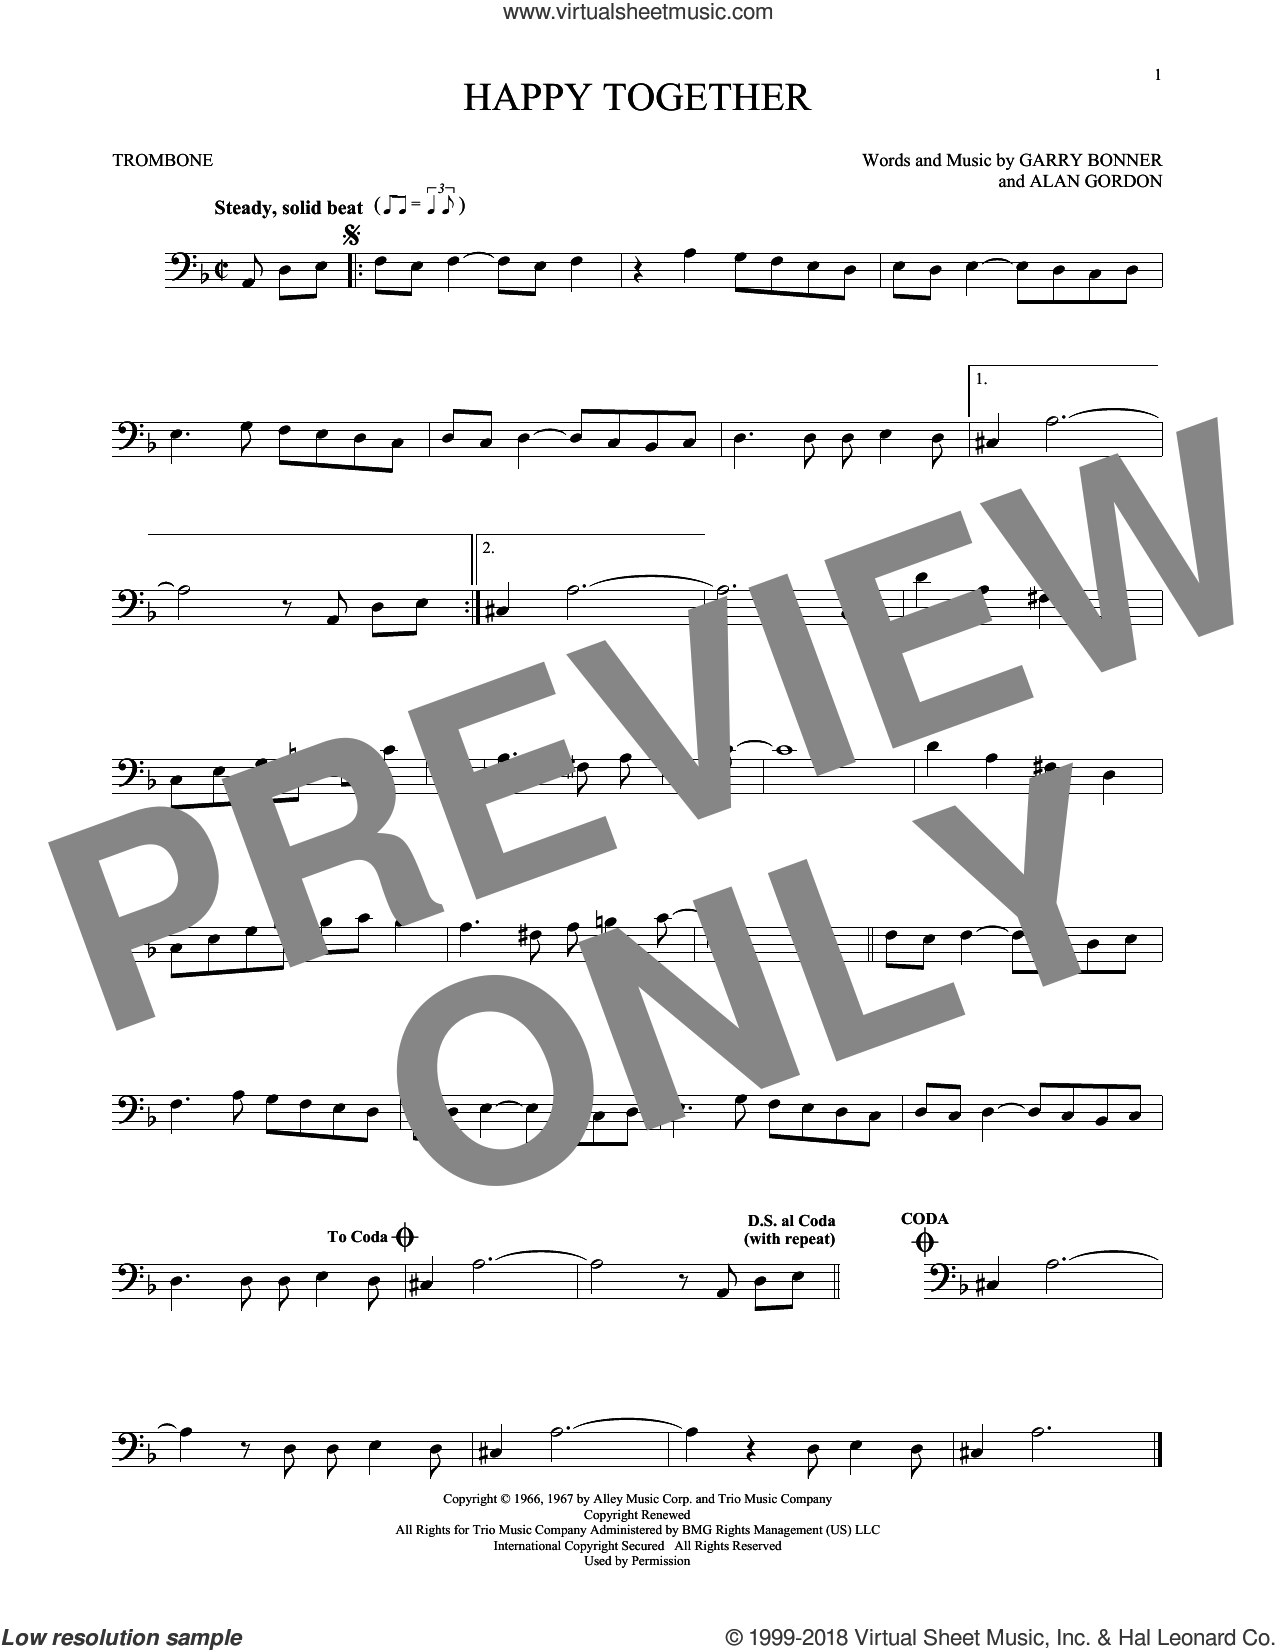 Happy Together sheet music for trombone solo by The Turtles, Alan Gordon and Garry Bonner, intermediate skill level